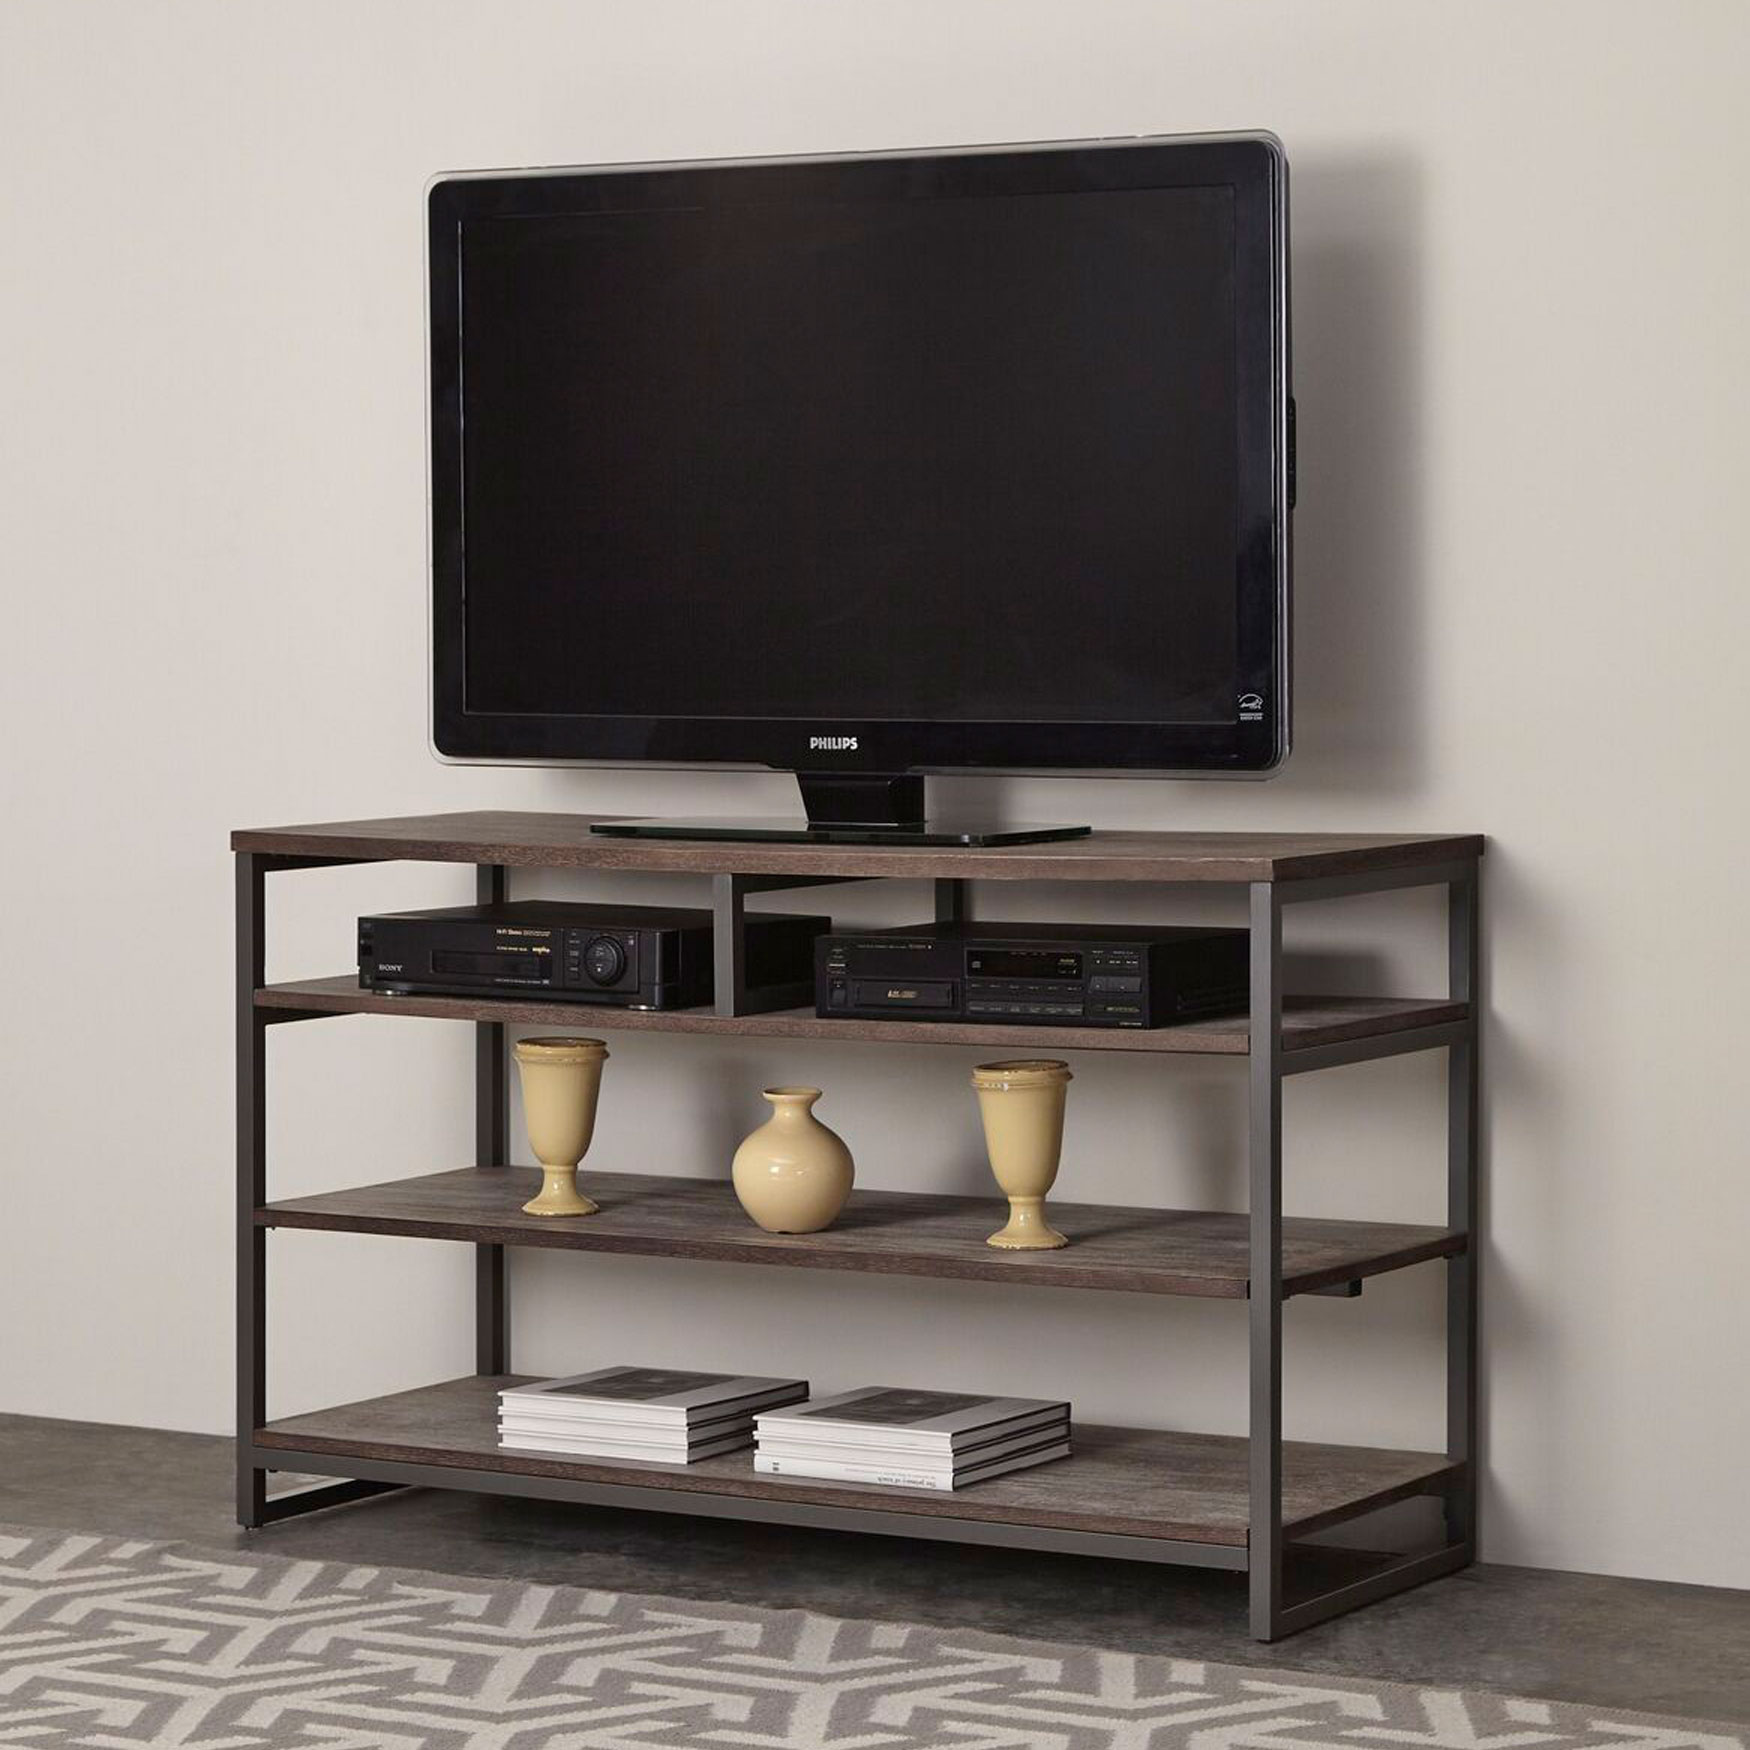 Barnside Metro TV Stand, GREY